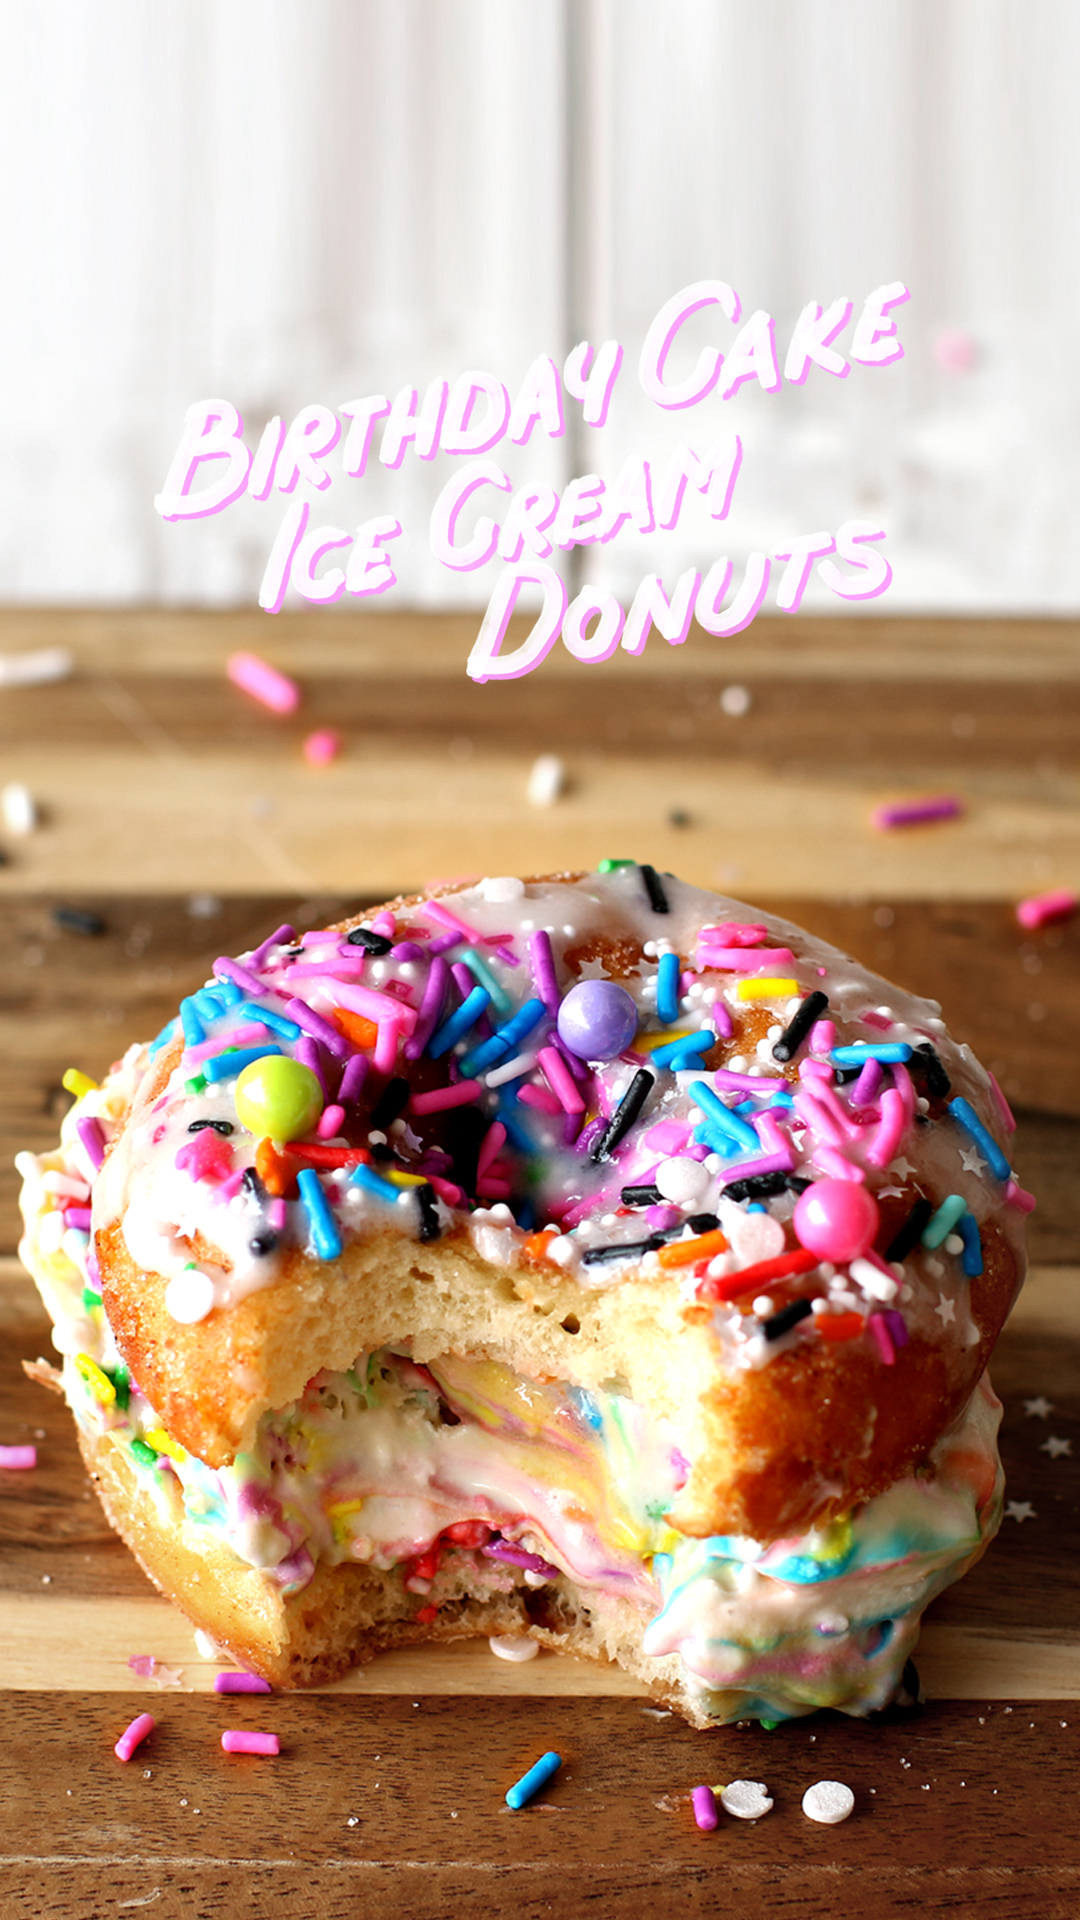 Birthday Cake Ice Cream Donuts The Scran Line Tastemade